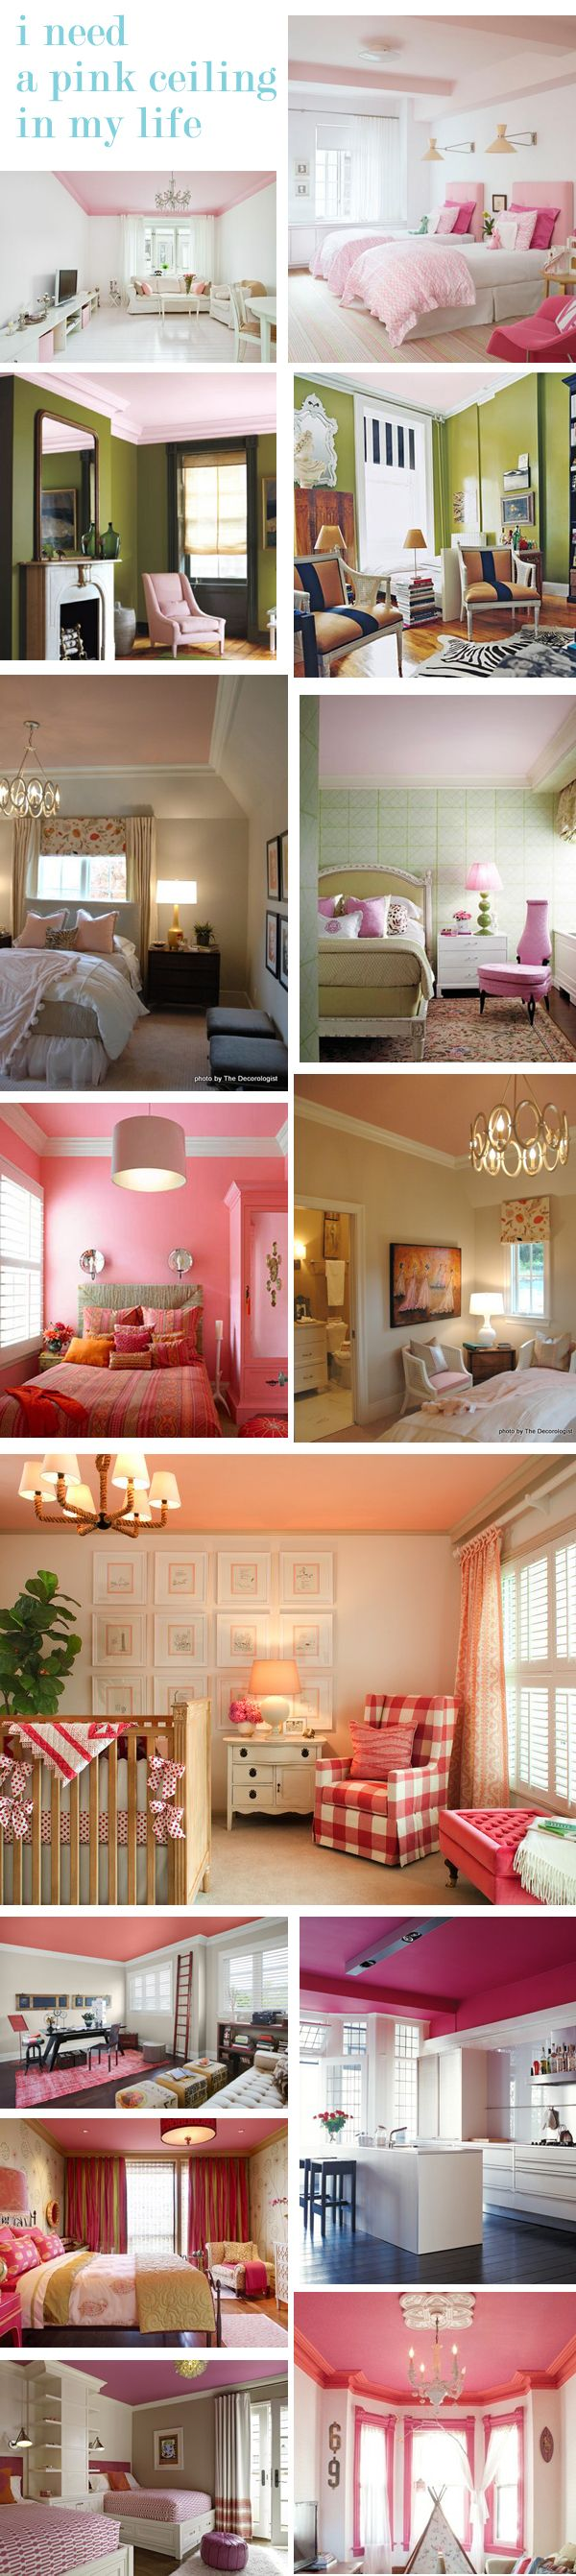 pink ceiling - big girl room? why am i already thinking of her big girl room?